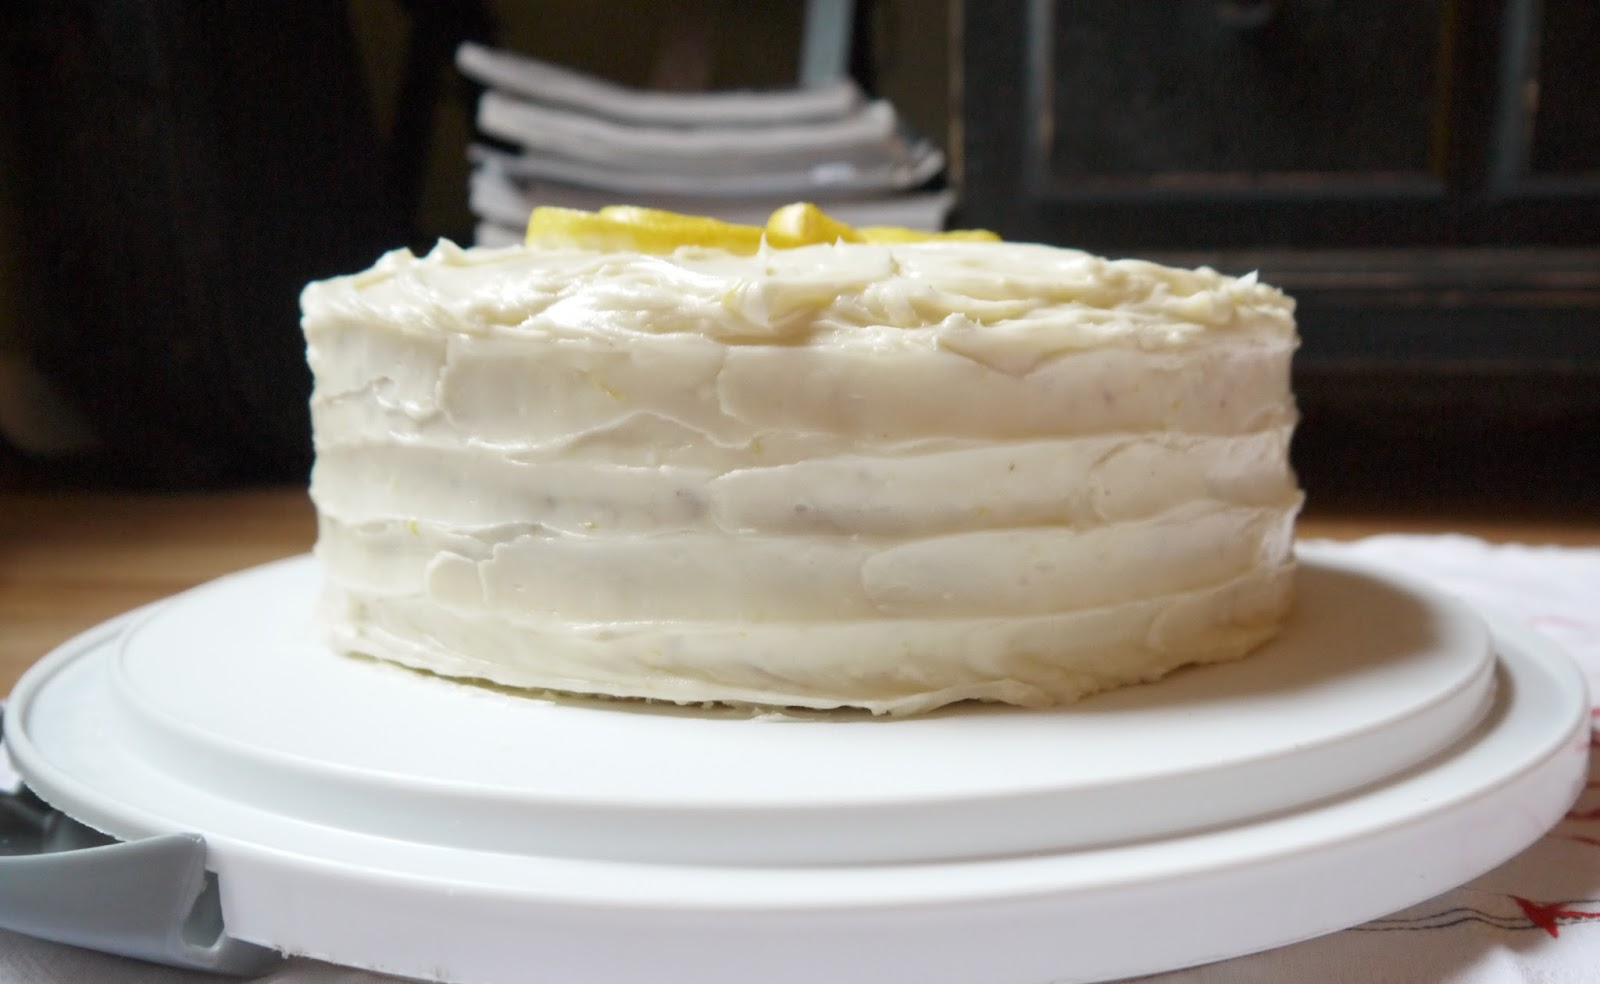 ... Through Life: Lemon Layer Cake with Lemon Cream Cheese Frosting